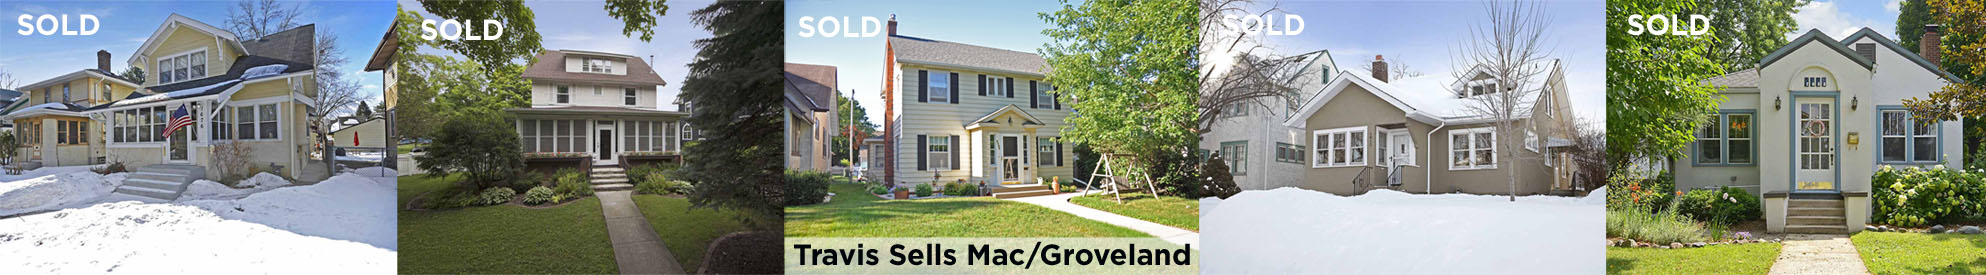 Mac/Groveland Real Estate & Mac/Groveland St. Paul Homes For Sale Travis Erickson Group Sells a lot of Mac/Groveland Homes.